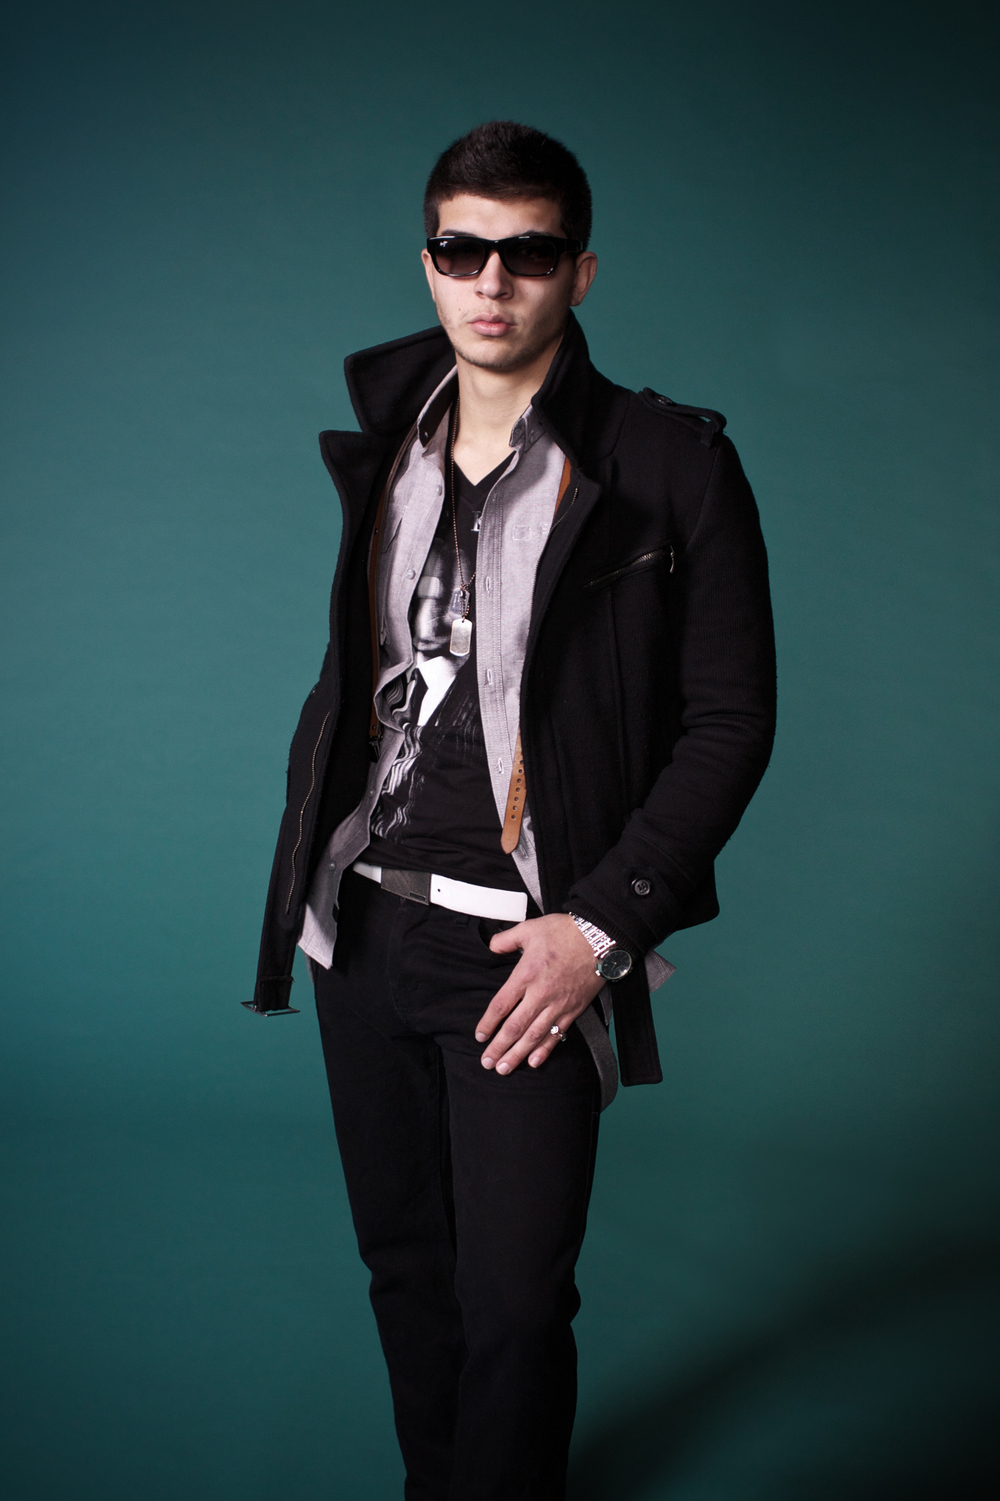 5STR_LOOKBOOK_Portrait2-5.jpg